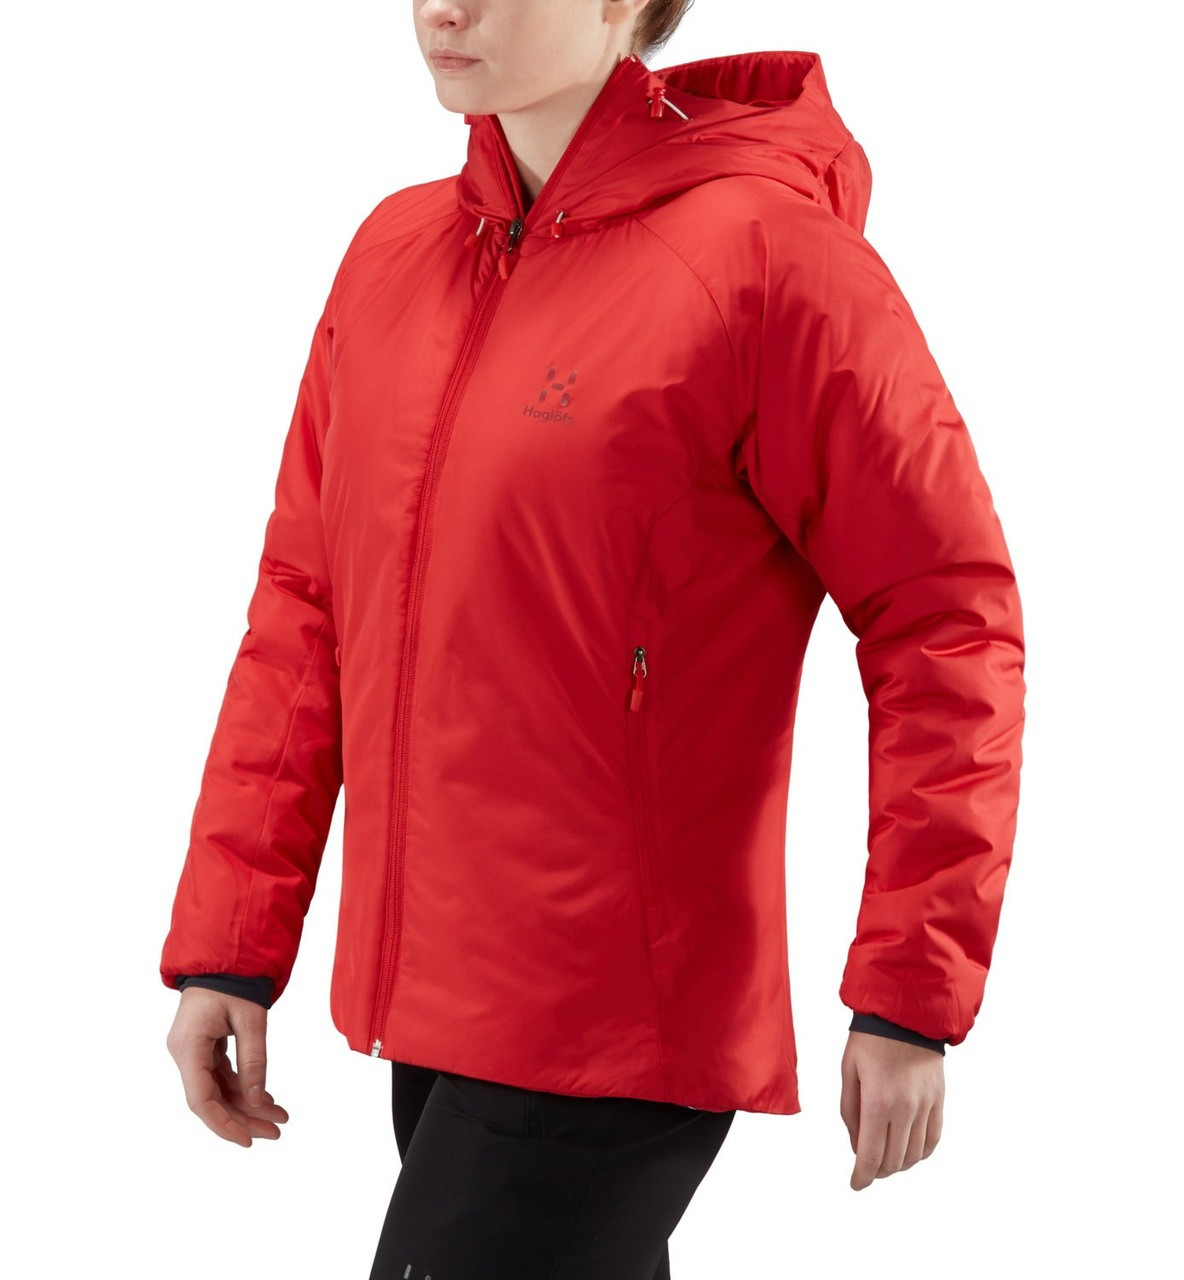 haglofs barrier hood women | women's insulated jacket